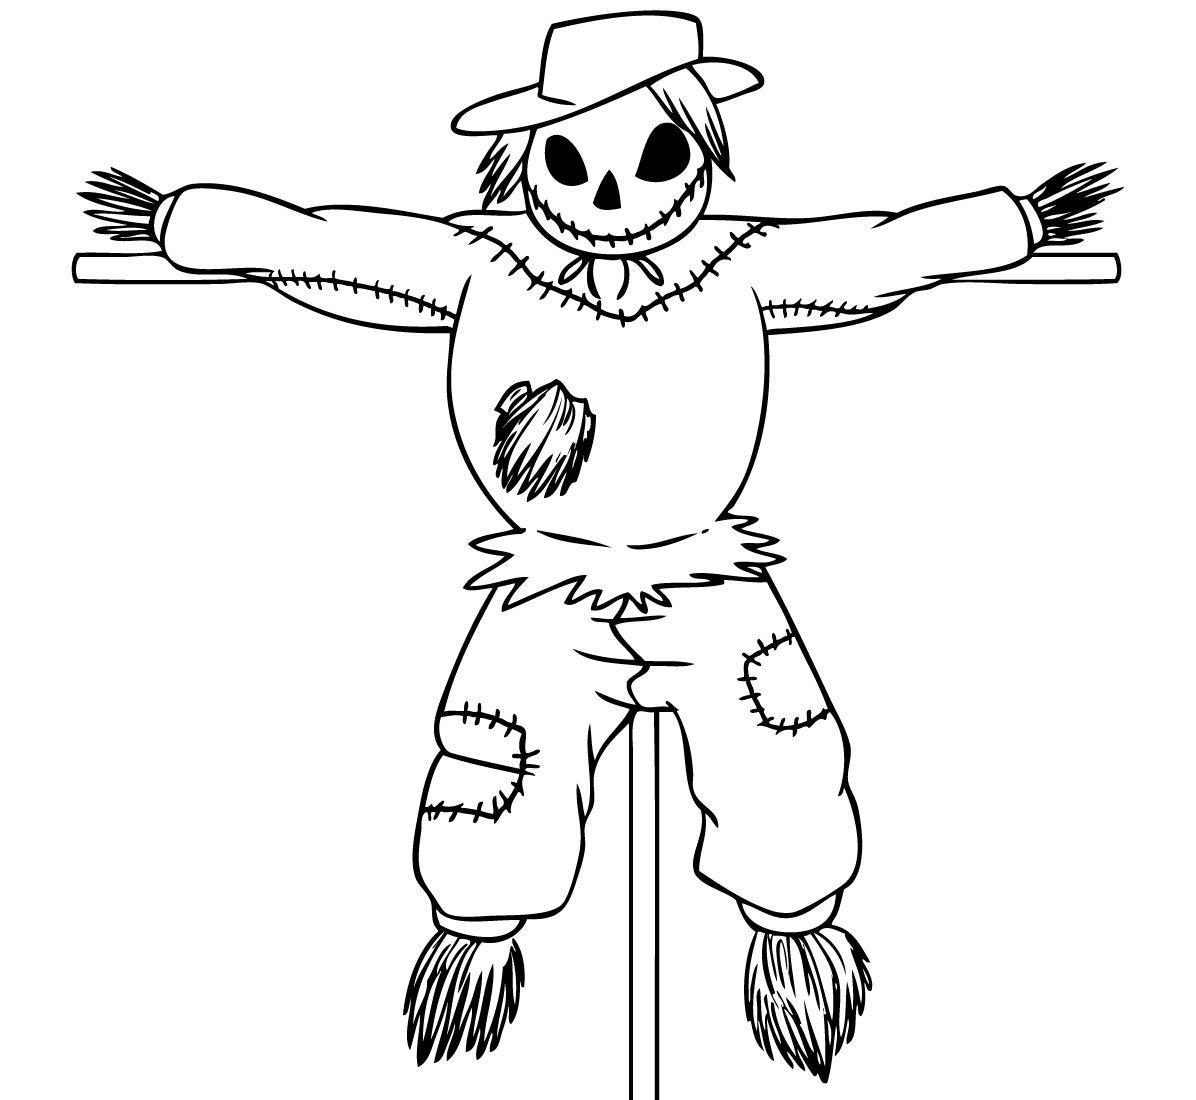 scarecrow coloring pages scary scarecrow coloring pages vingel coloring scarecrow pages